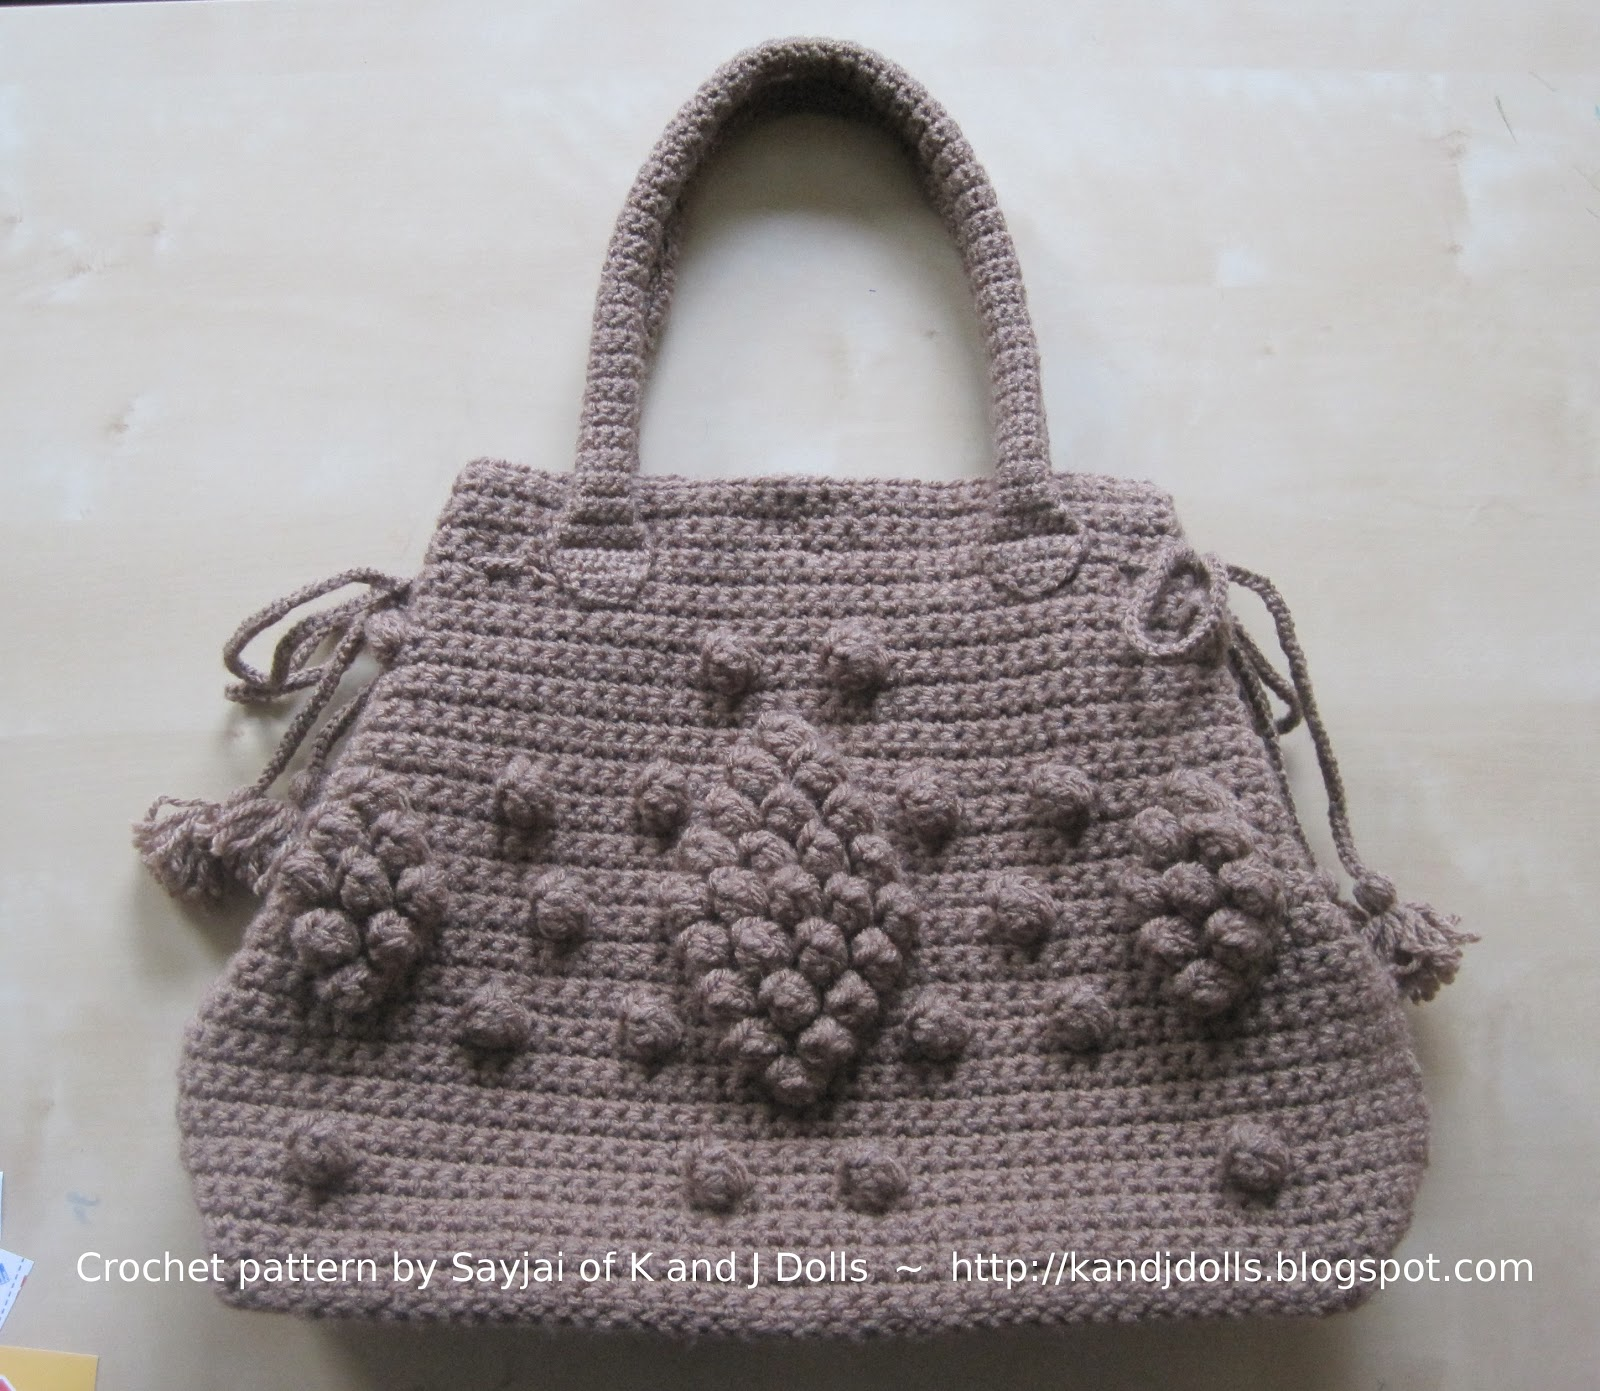 Crochet Patterns For Purses : Taupe Bag crochet pattern - Sayjai Amigurumi Crochet Patterns ~ K and ...